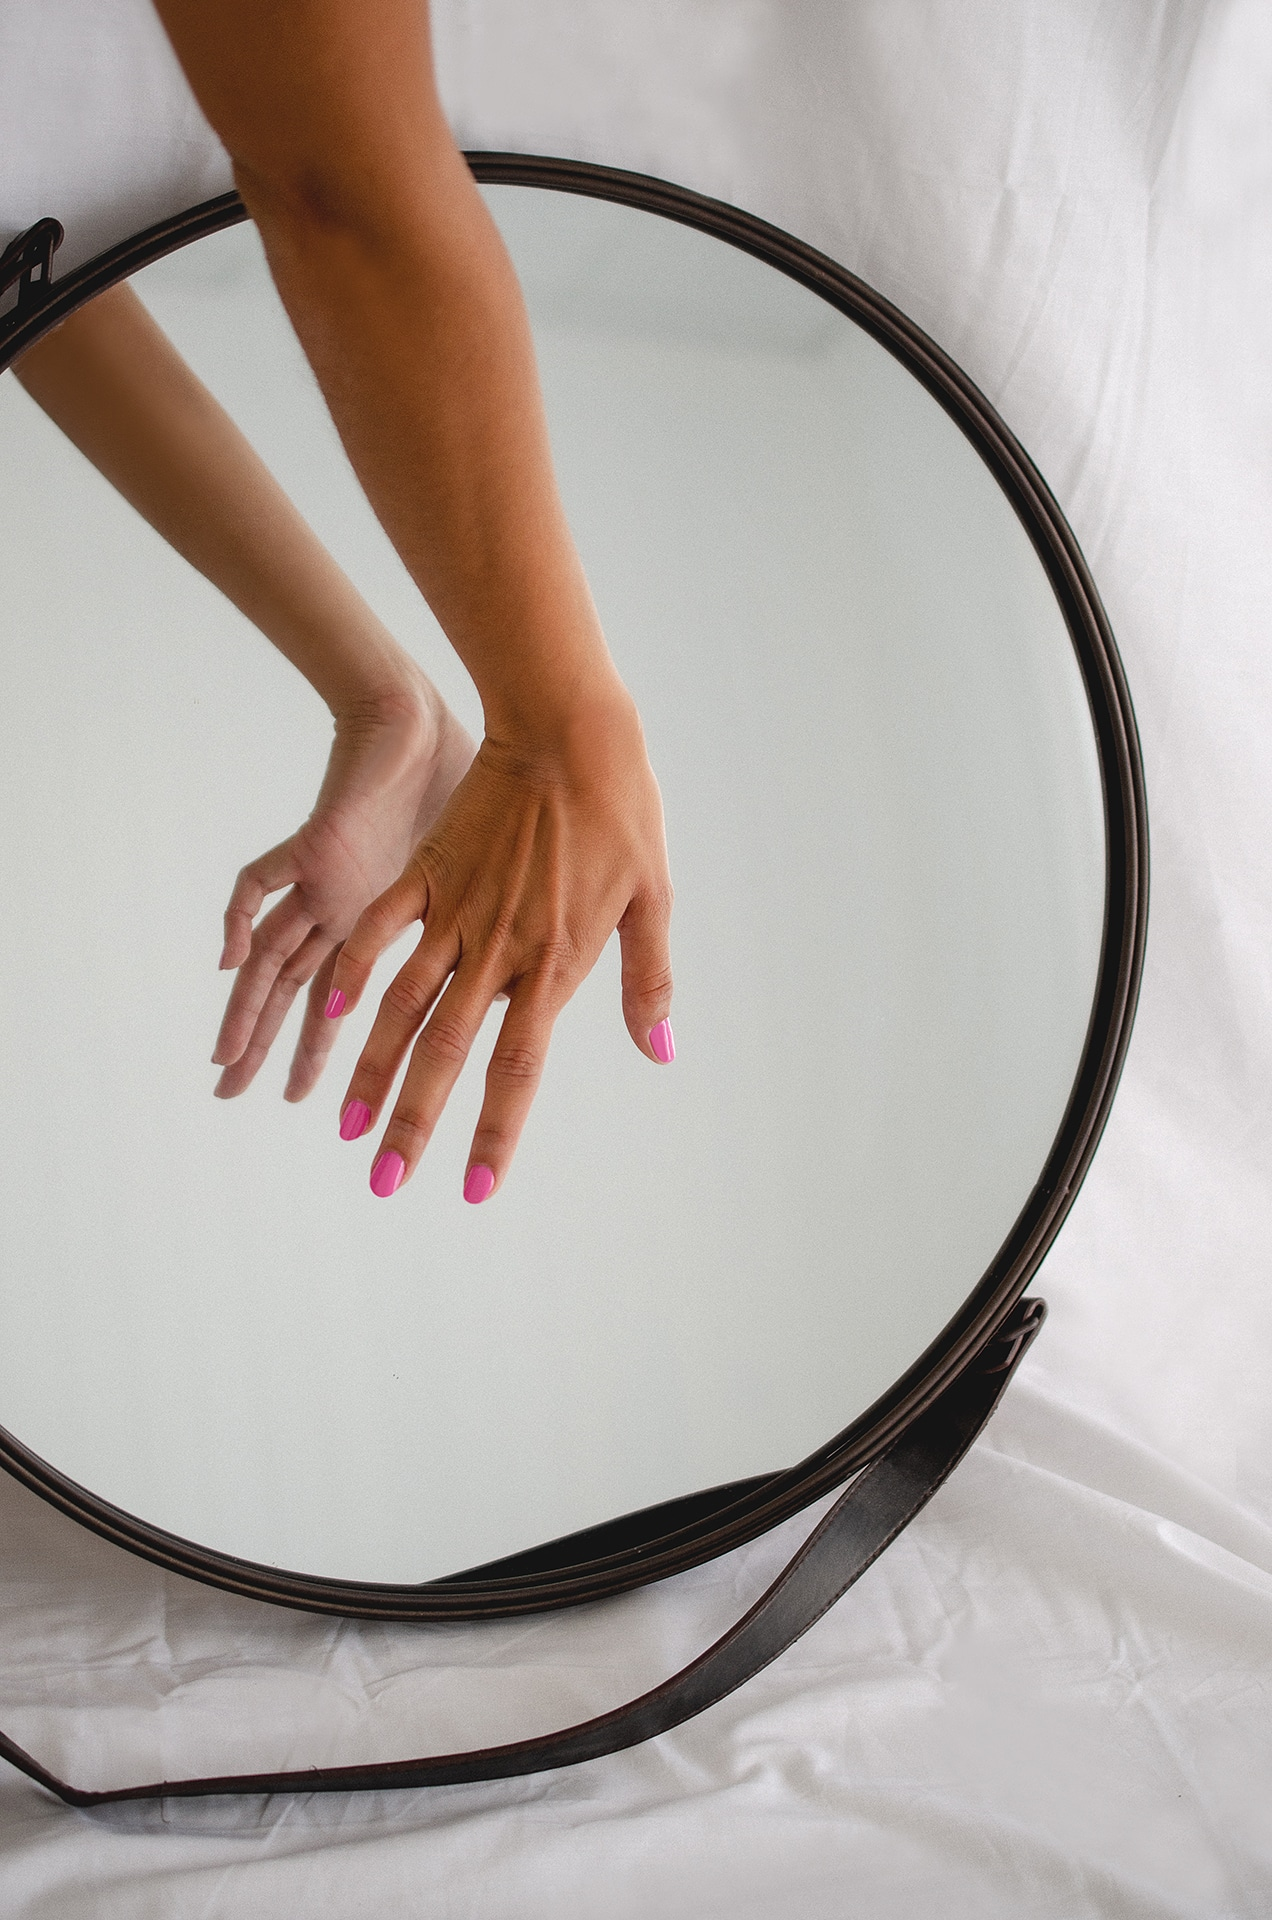 hand in front on mirror wearing pink nail polish by sienna